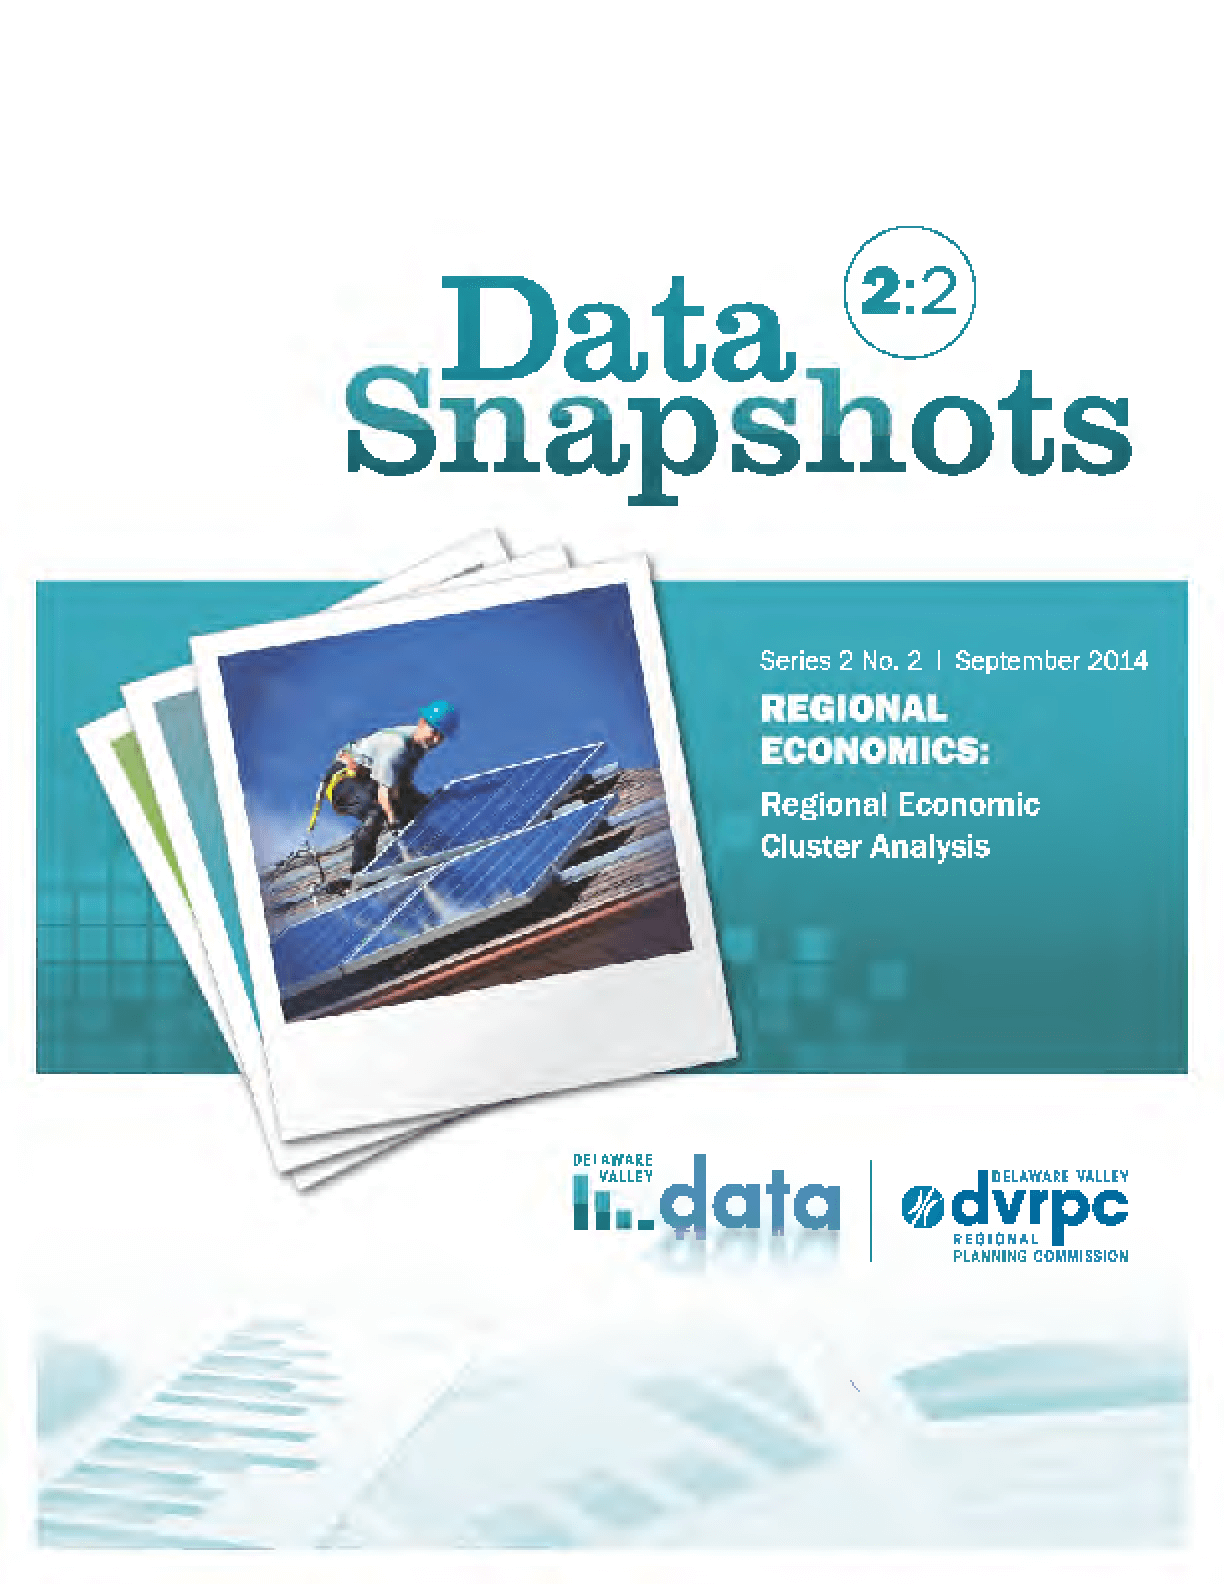 Data Snapshots 2.2 - Regional Economics: Regional Economic Cluster Analysis